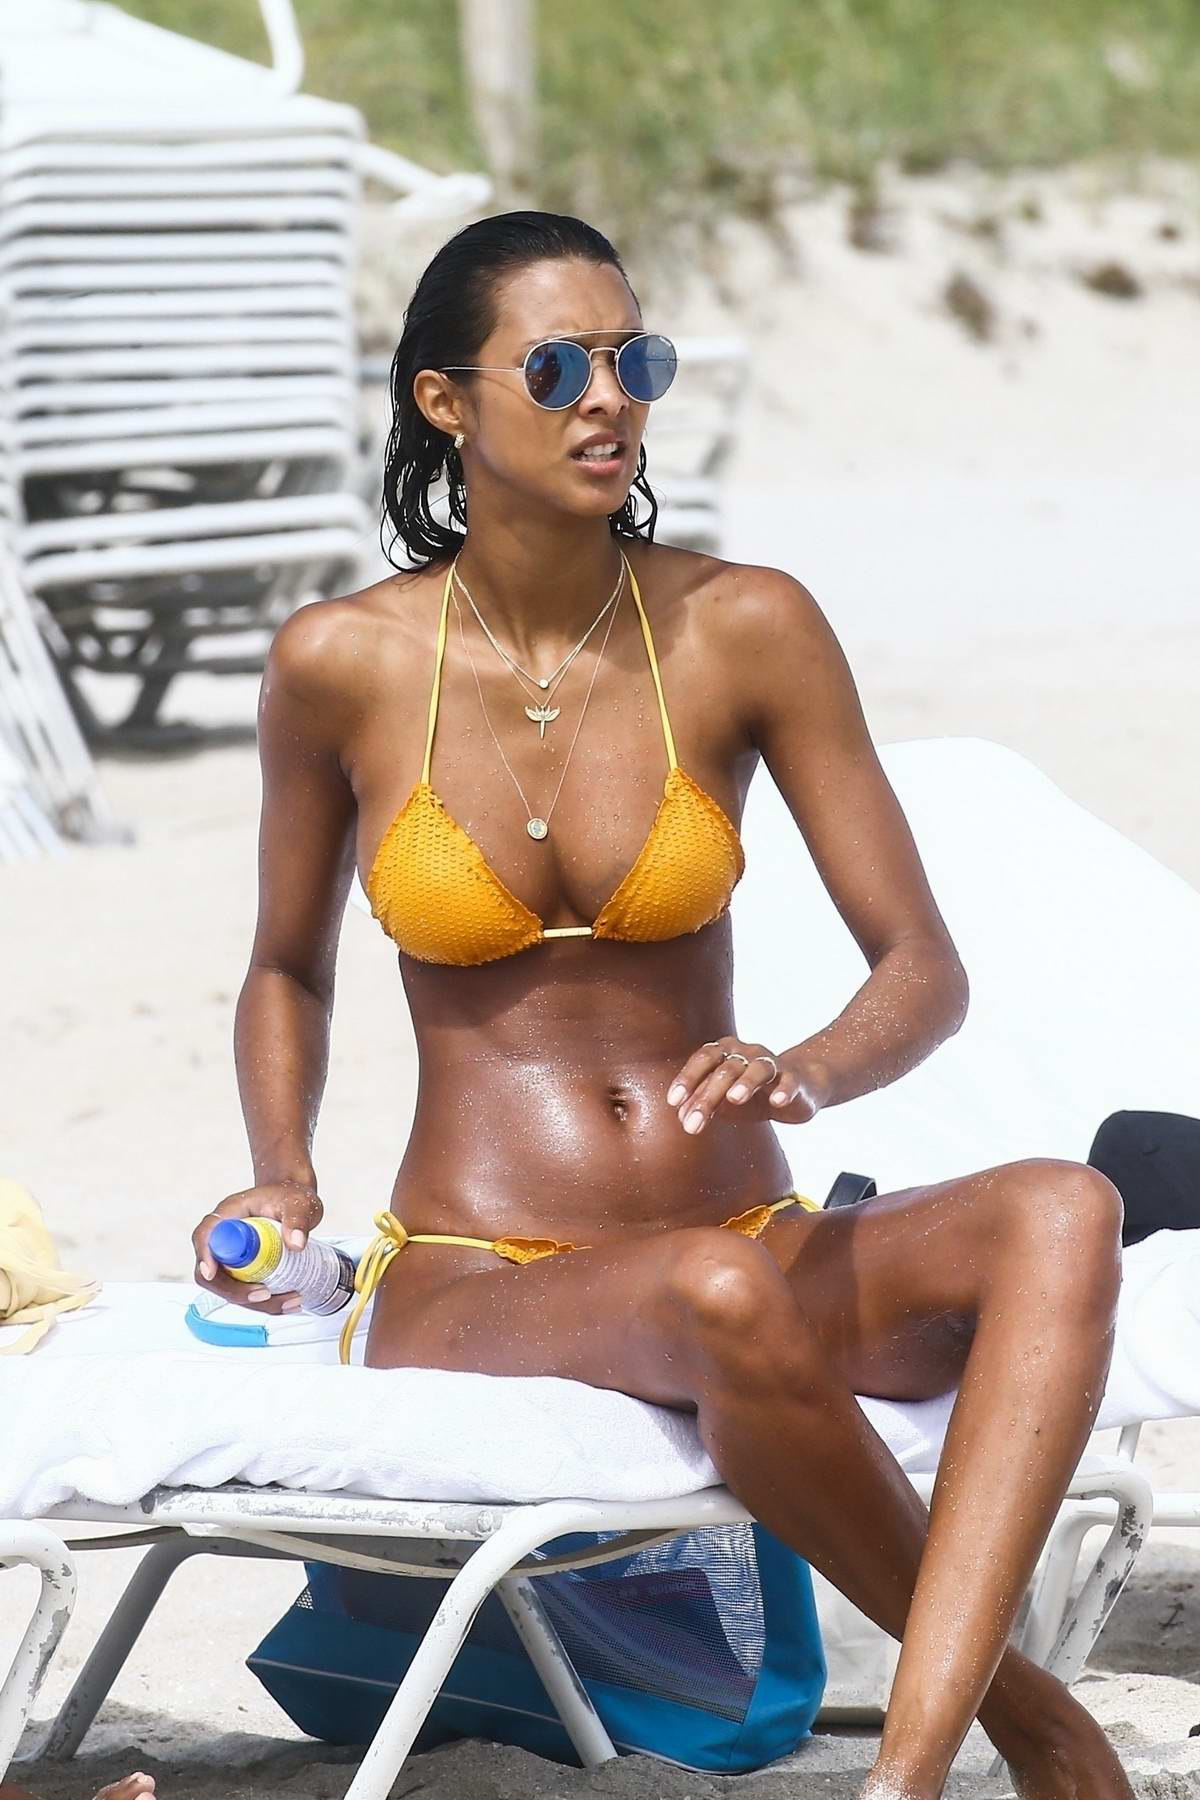 Lais Ribeiro and Jasmine Tookes soaks up some sun as they spend a day off at the beach in Miami, Florida